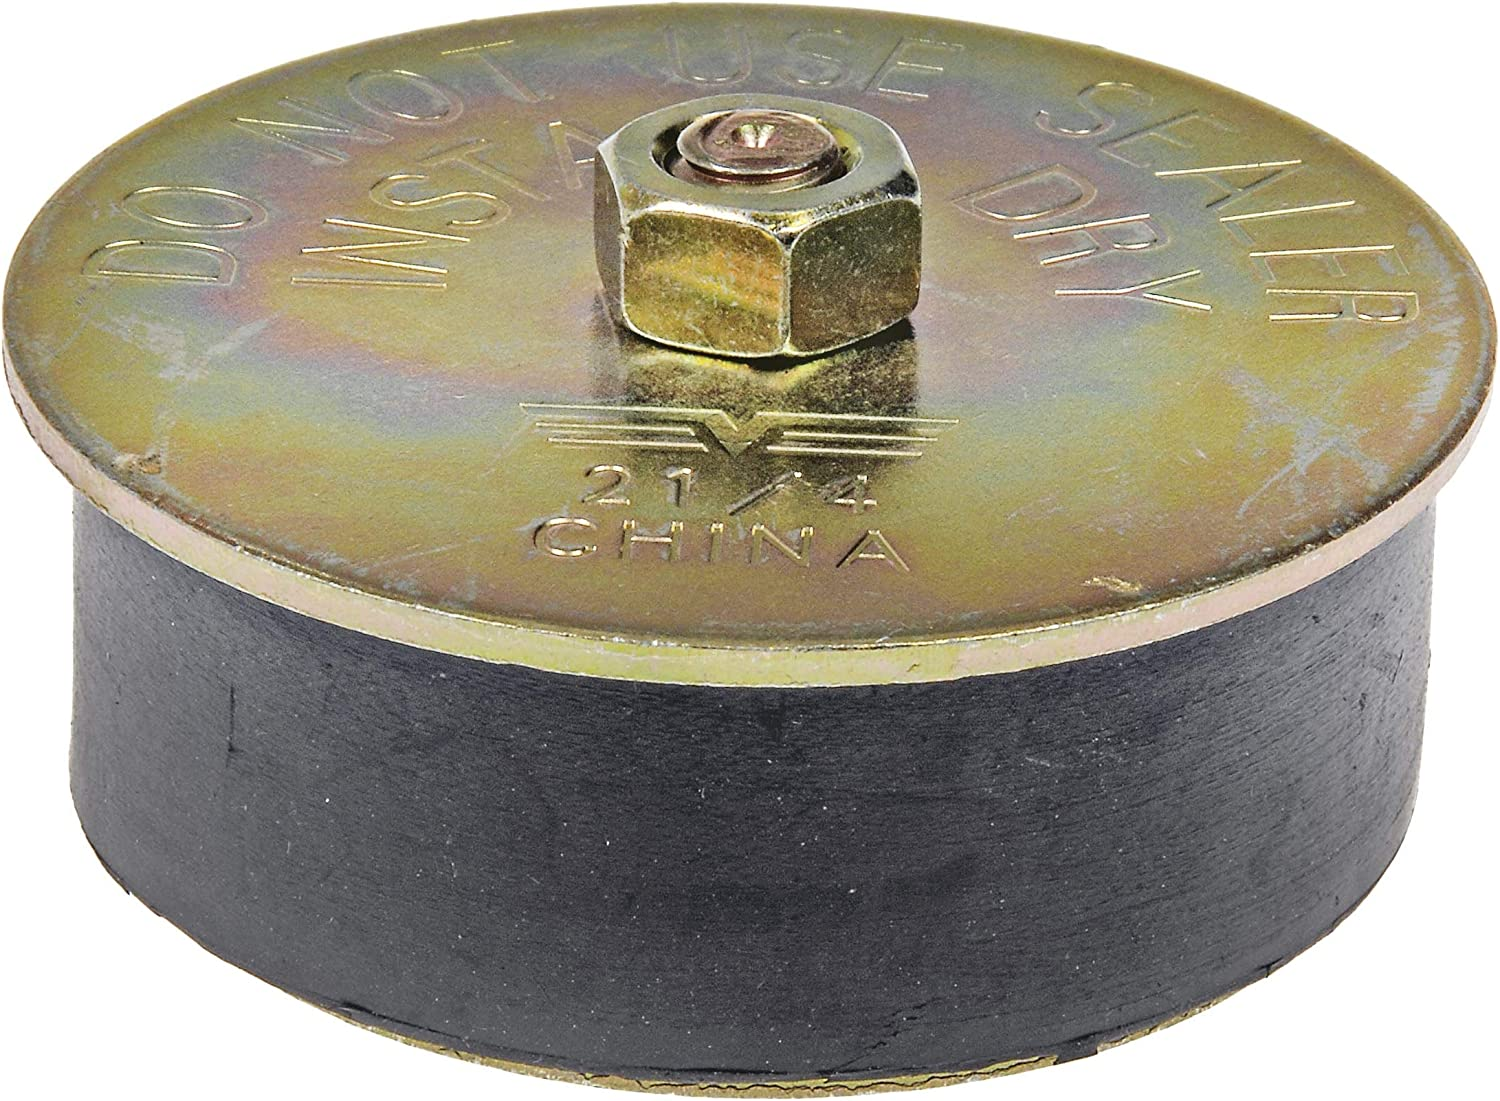 - 2-1//8 In. Dorman Autograde 570-014.1 Rubber Expansion Plug 2 In - Size Range 2 In